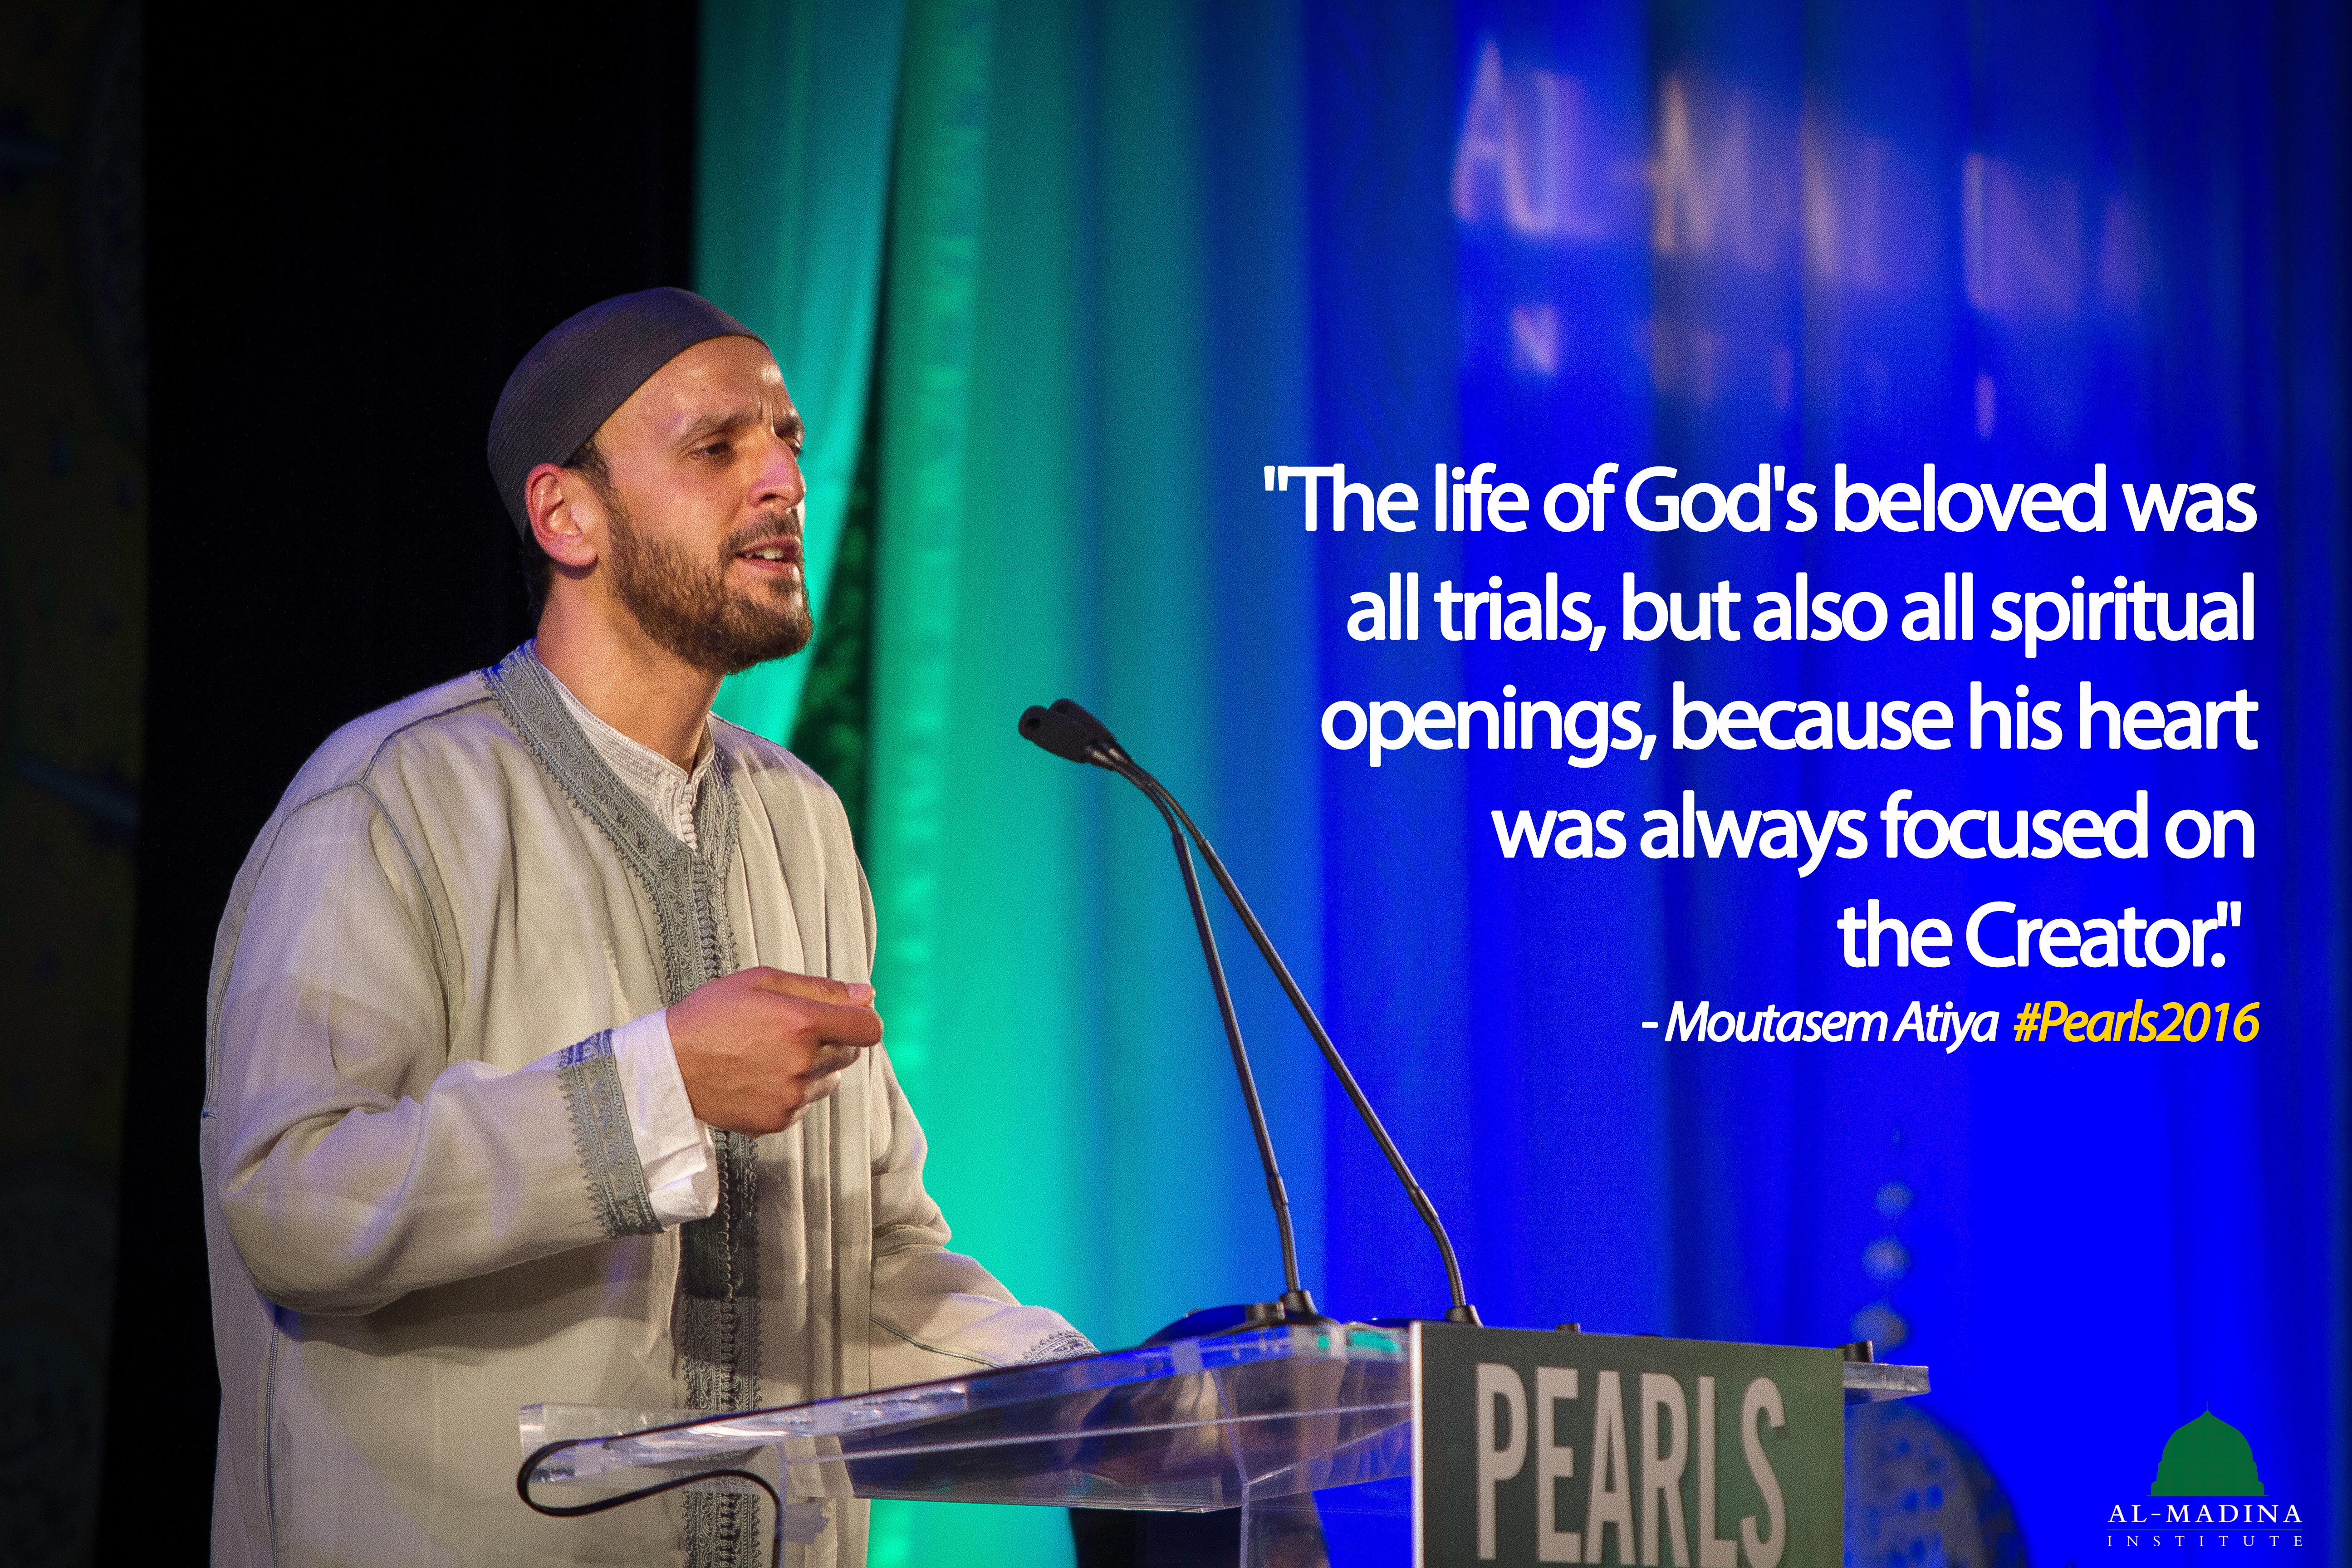 Pearls of the Qur'an - Programs by Al-Madina Institute